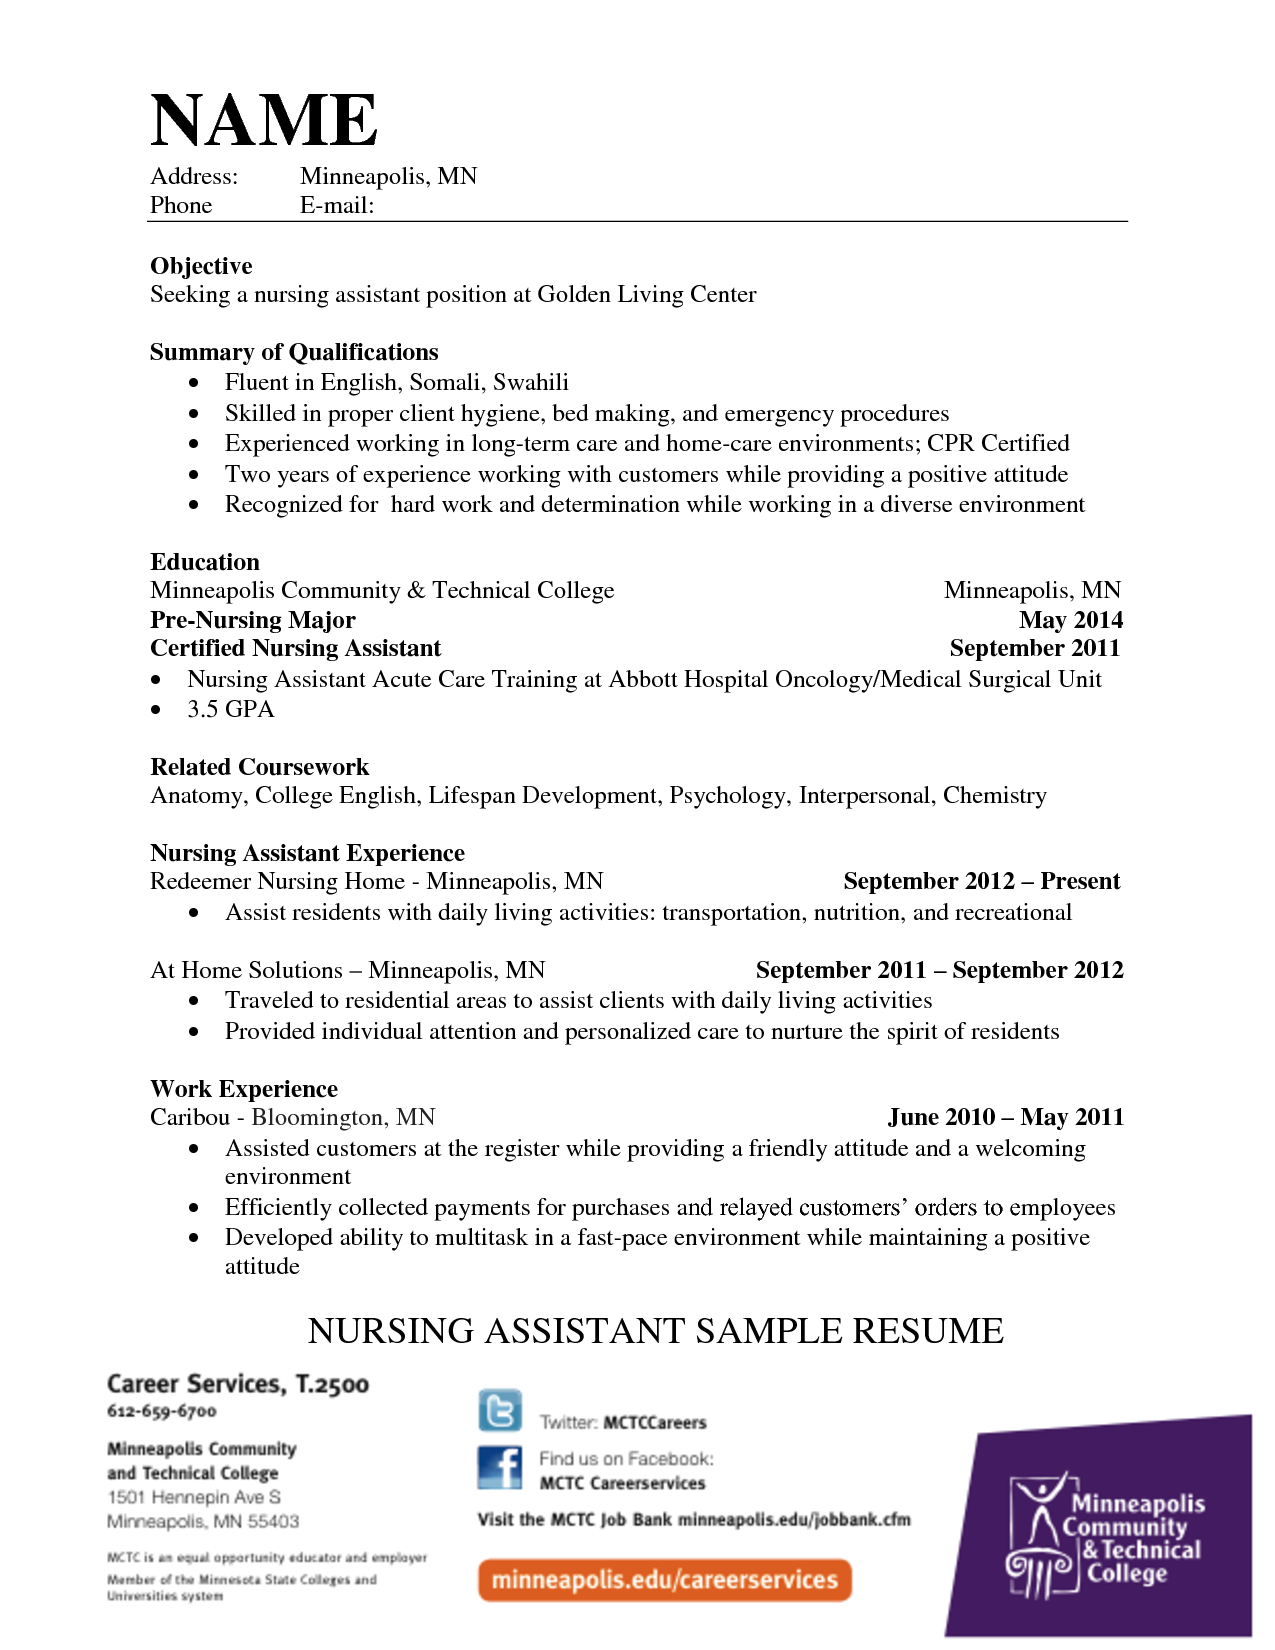 Example Application Letter For Nursing Assistant Cna Job Resume Cover  Happytom Waitress Skills Waitressing  Cna Job Resume